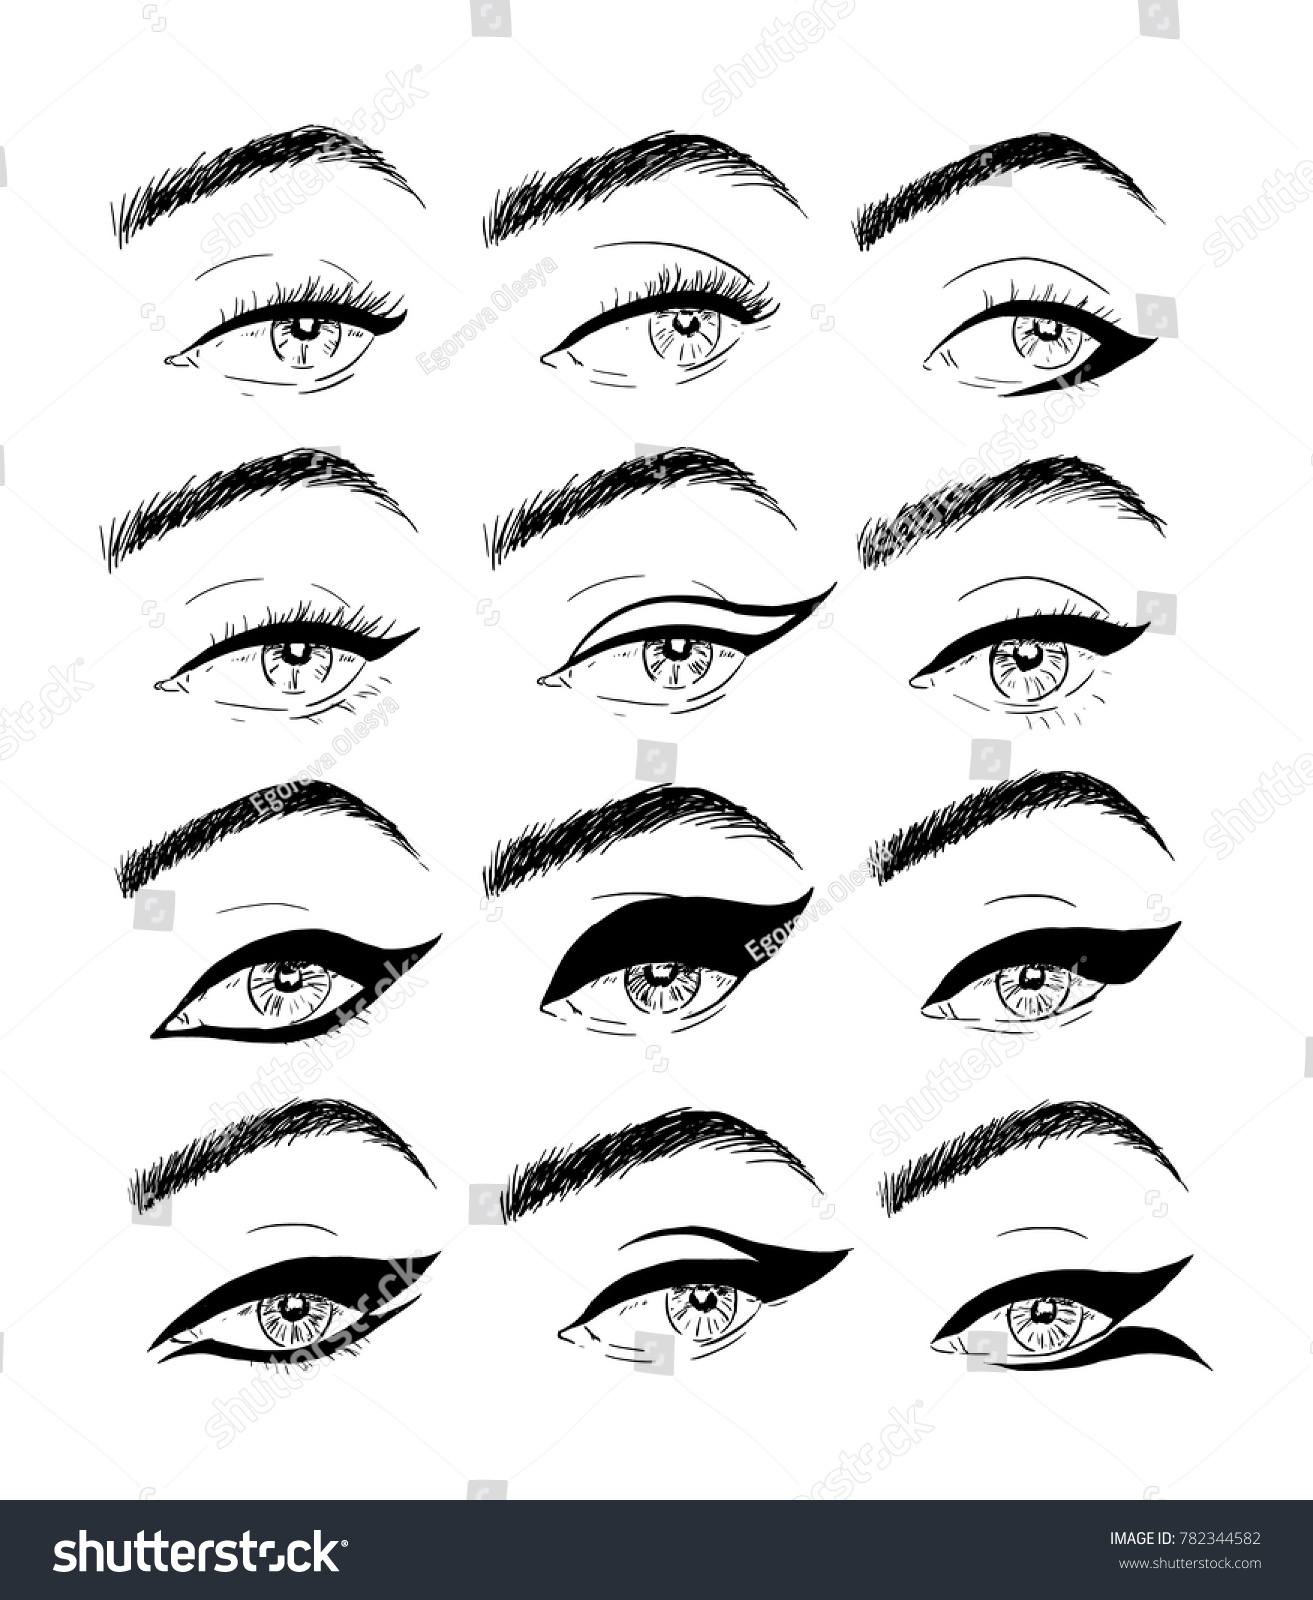 Illustrations Using Liner Makeup Eyes Stock Vector Royalty Free